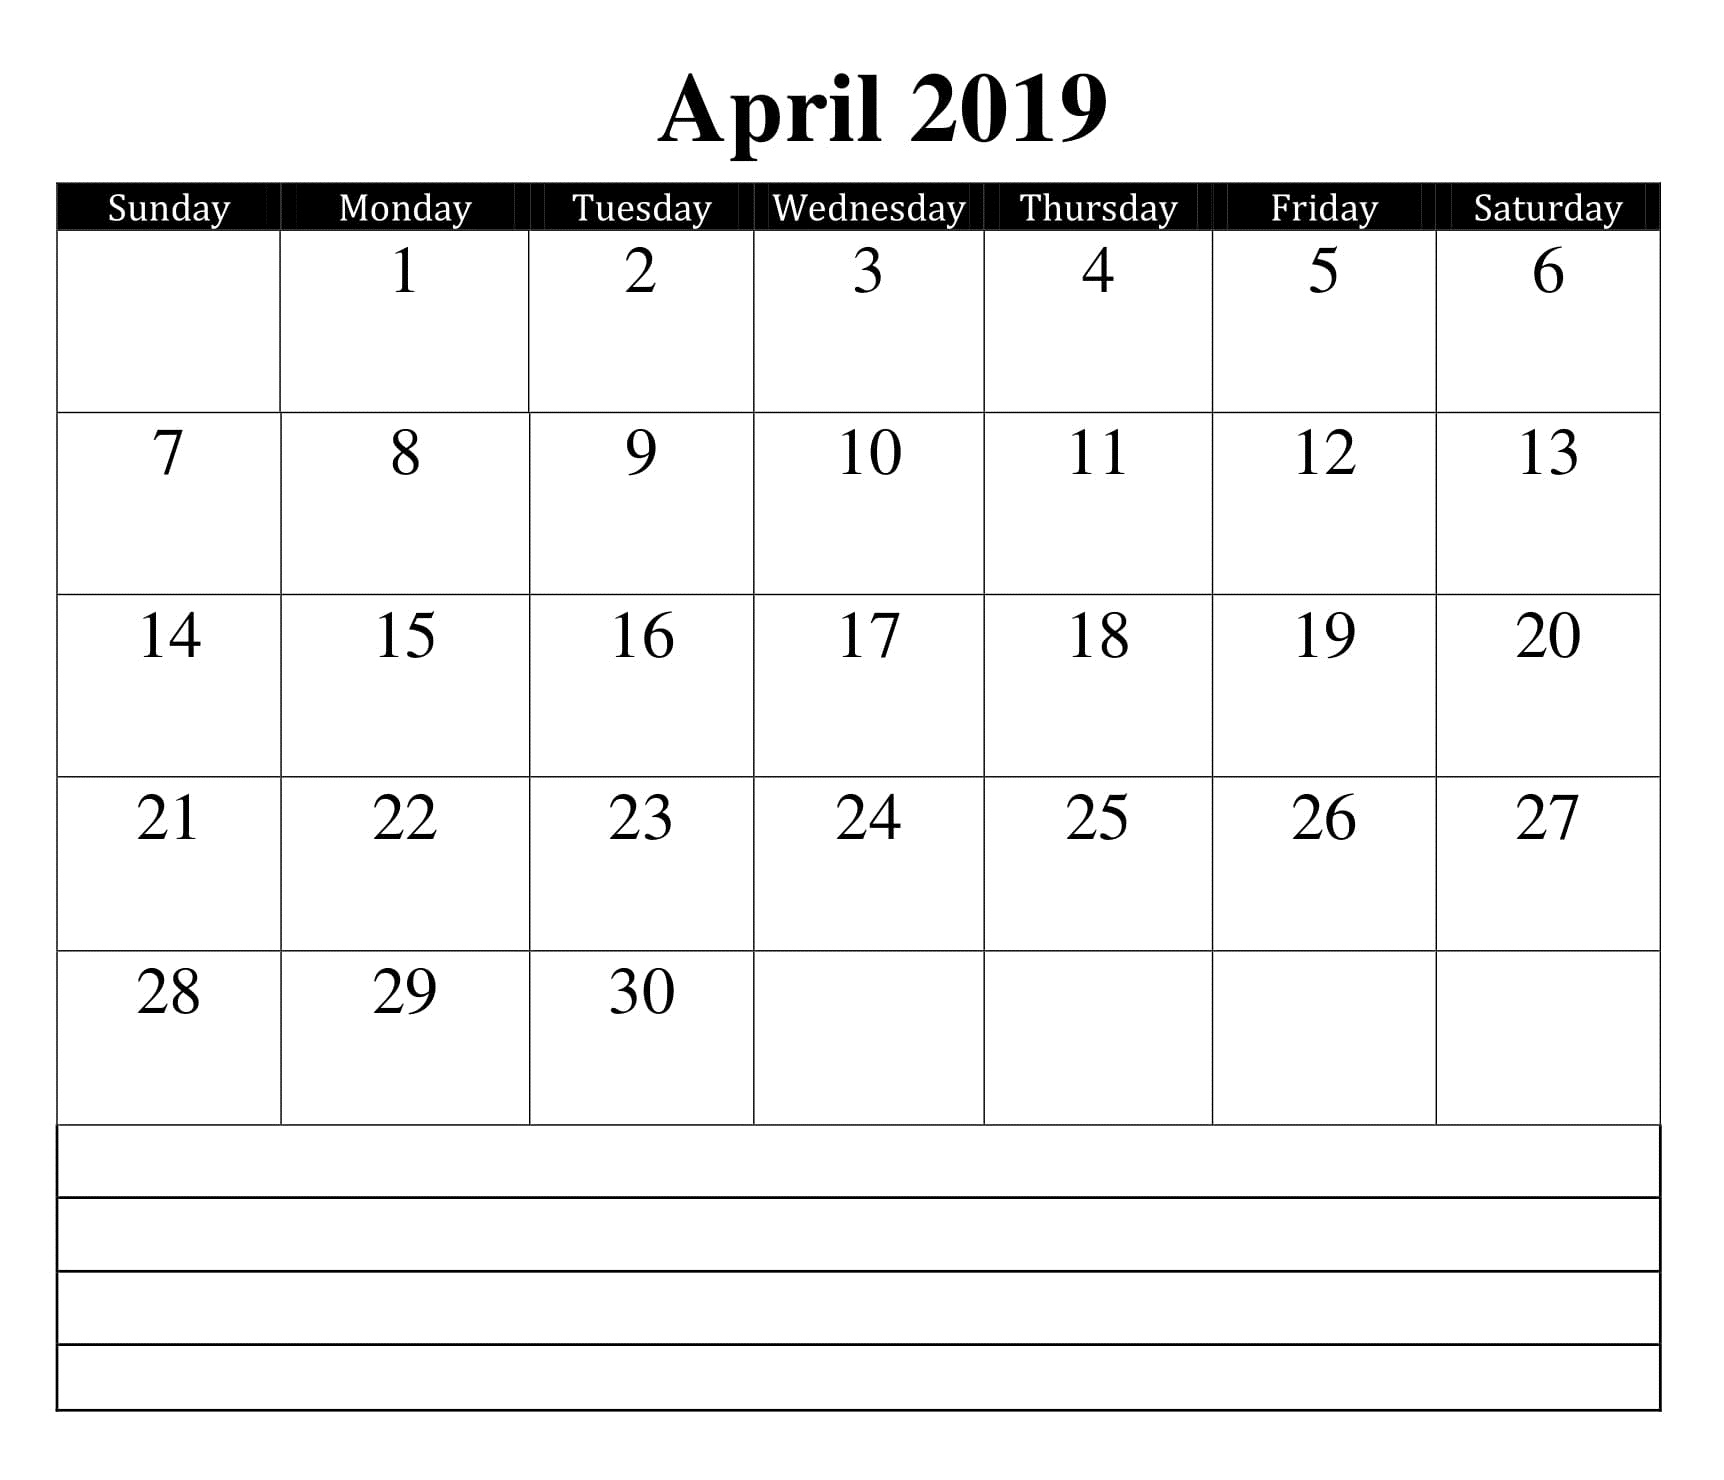 April 2019 Calendar with Notes